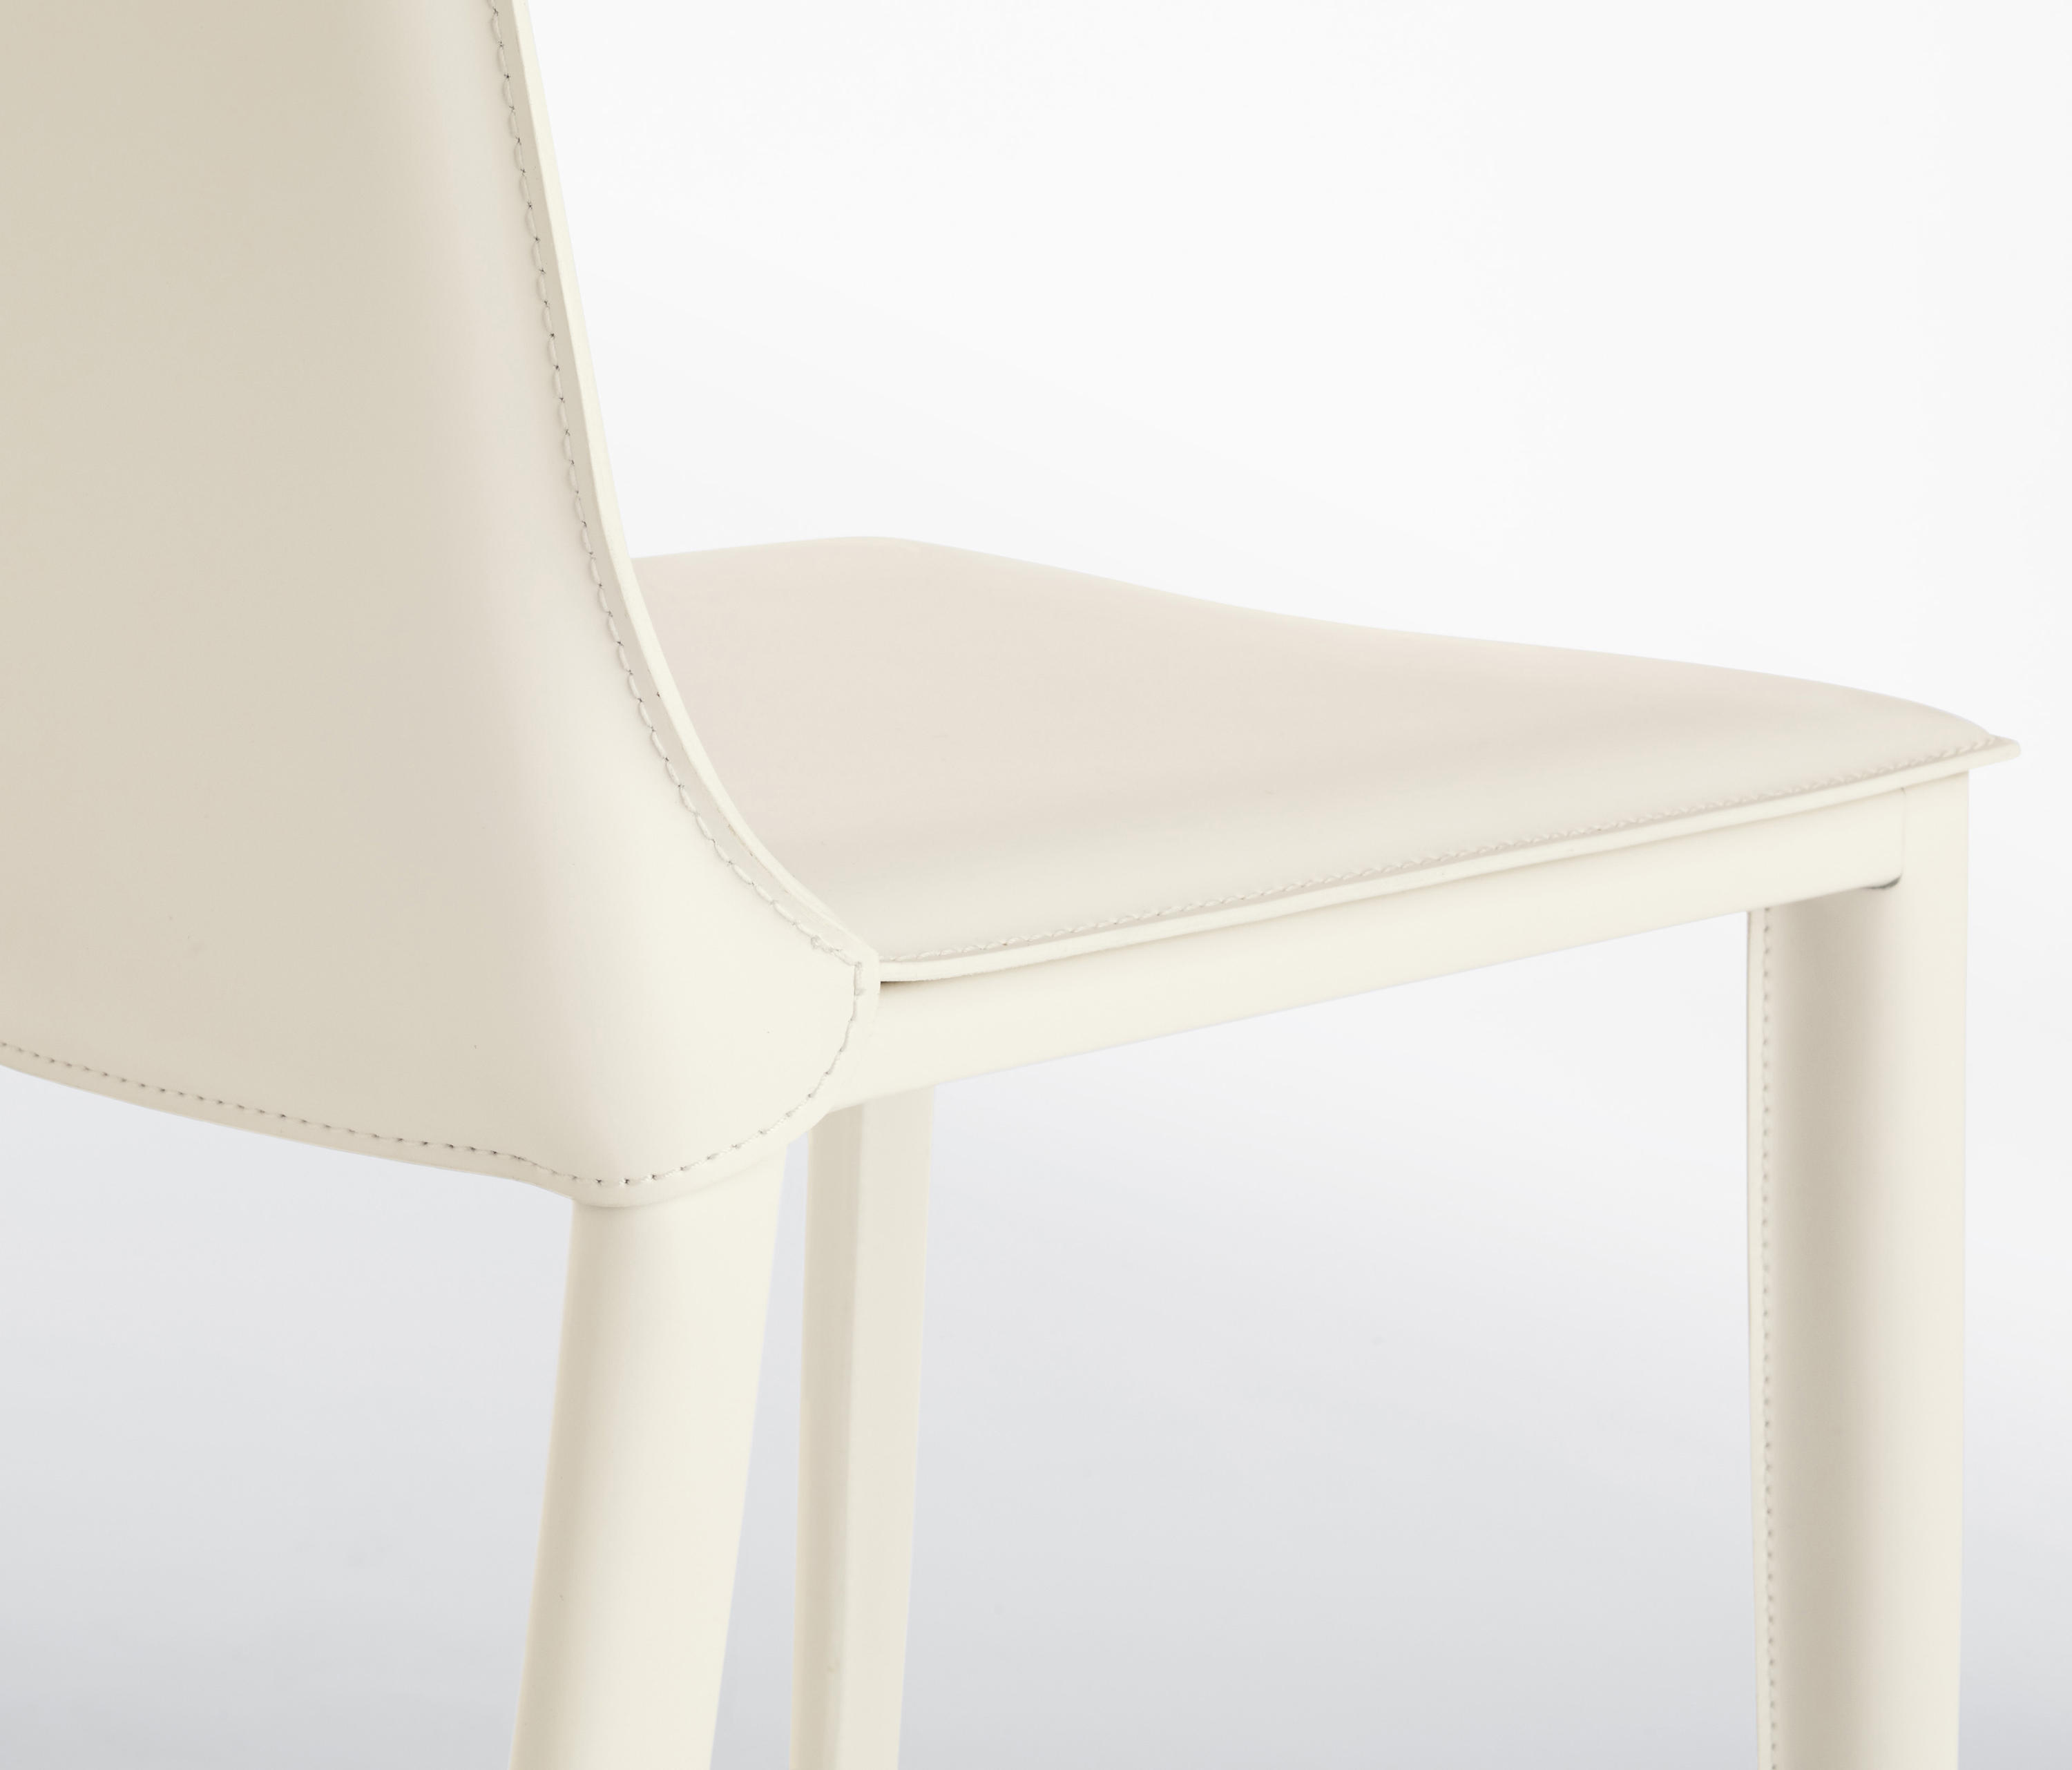 ... Bottega Counter Stool by Design Within Reach | Bar stools ... & BOTTEGA COUNTER STOOL - Bar stools from Design Within Reach ... islam-shia.org